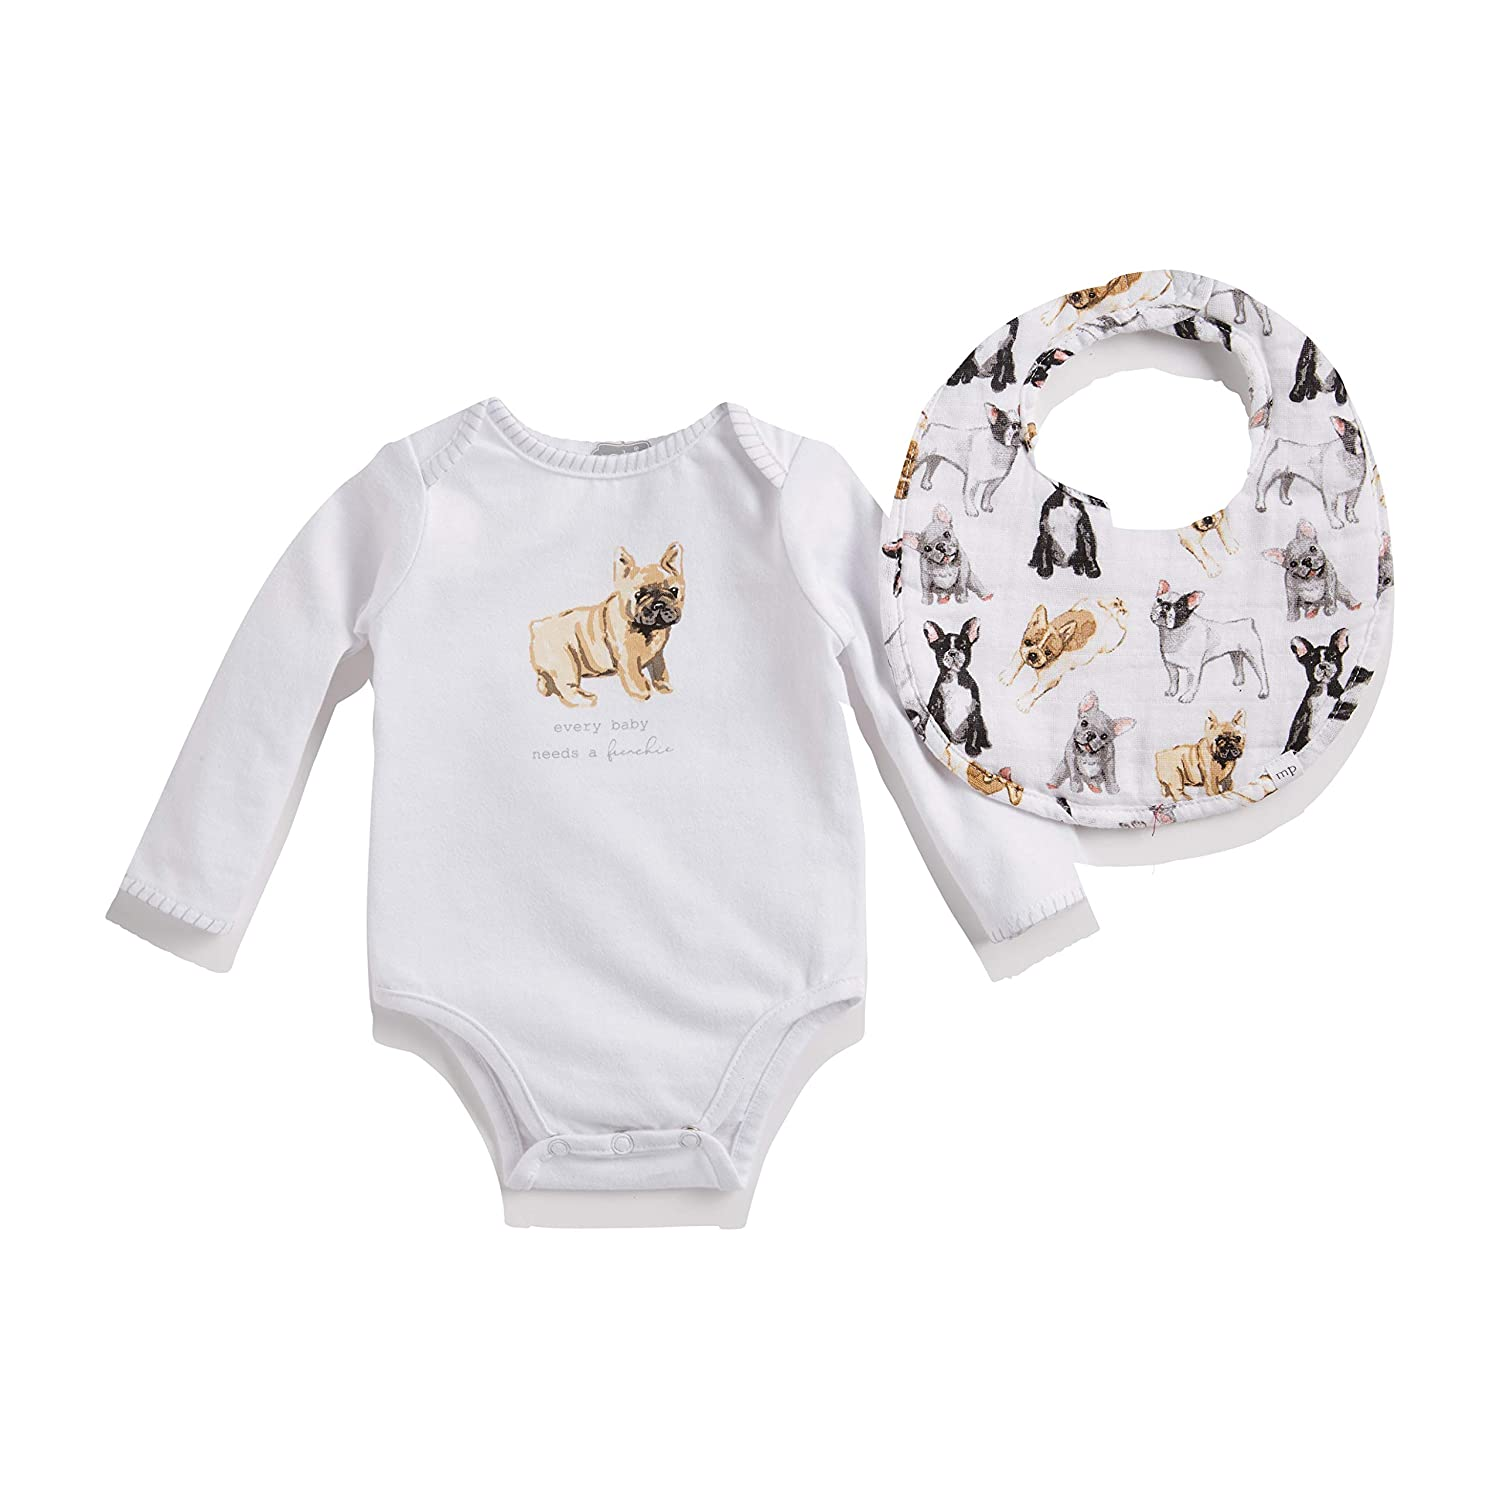 Frenchie Crawler and BIB Limited time cheap sale Max 82% OFF Set